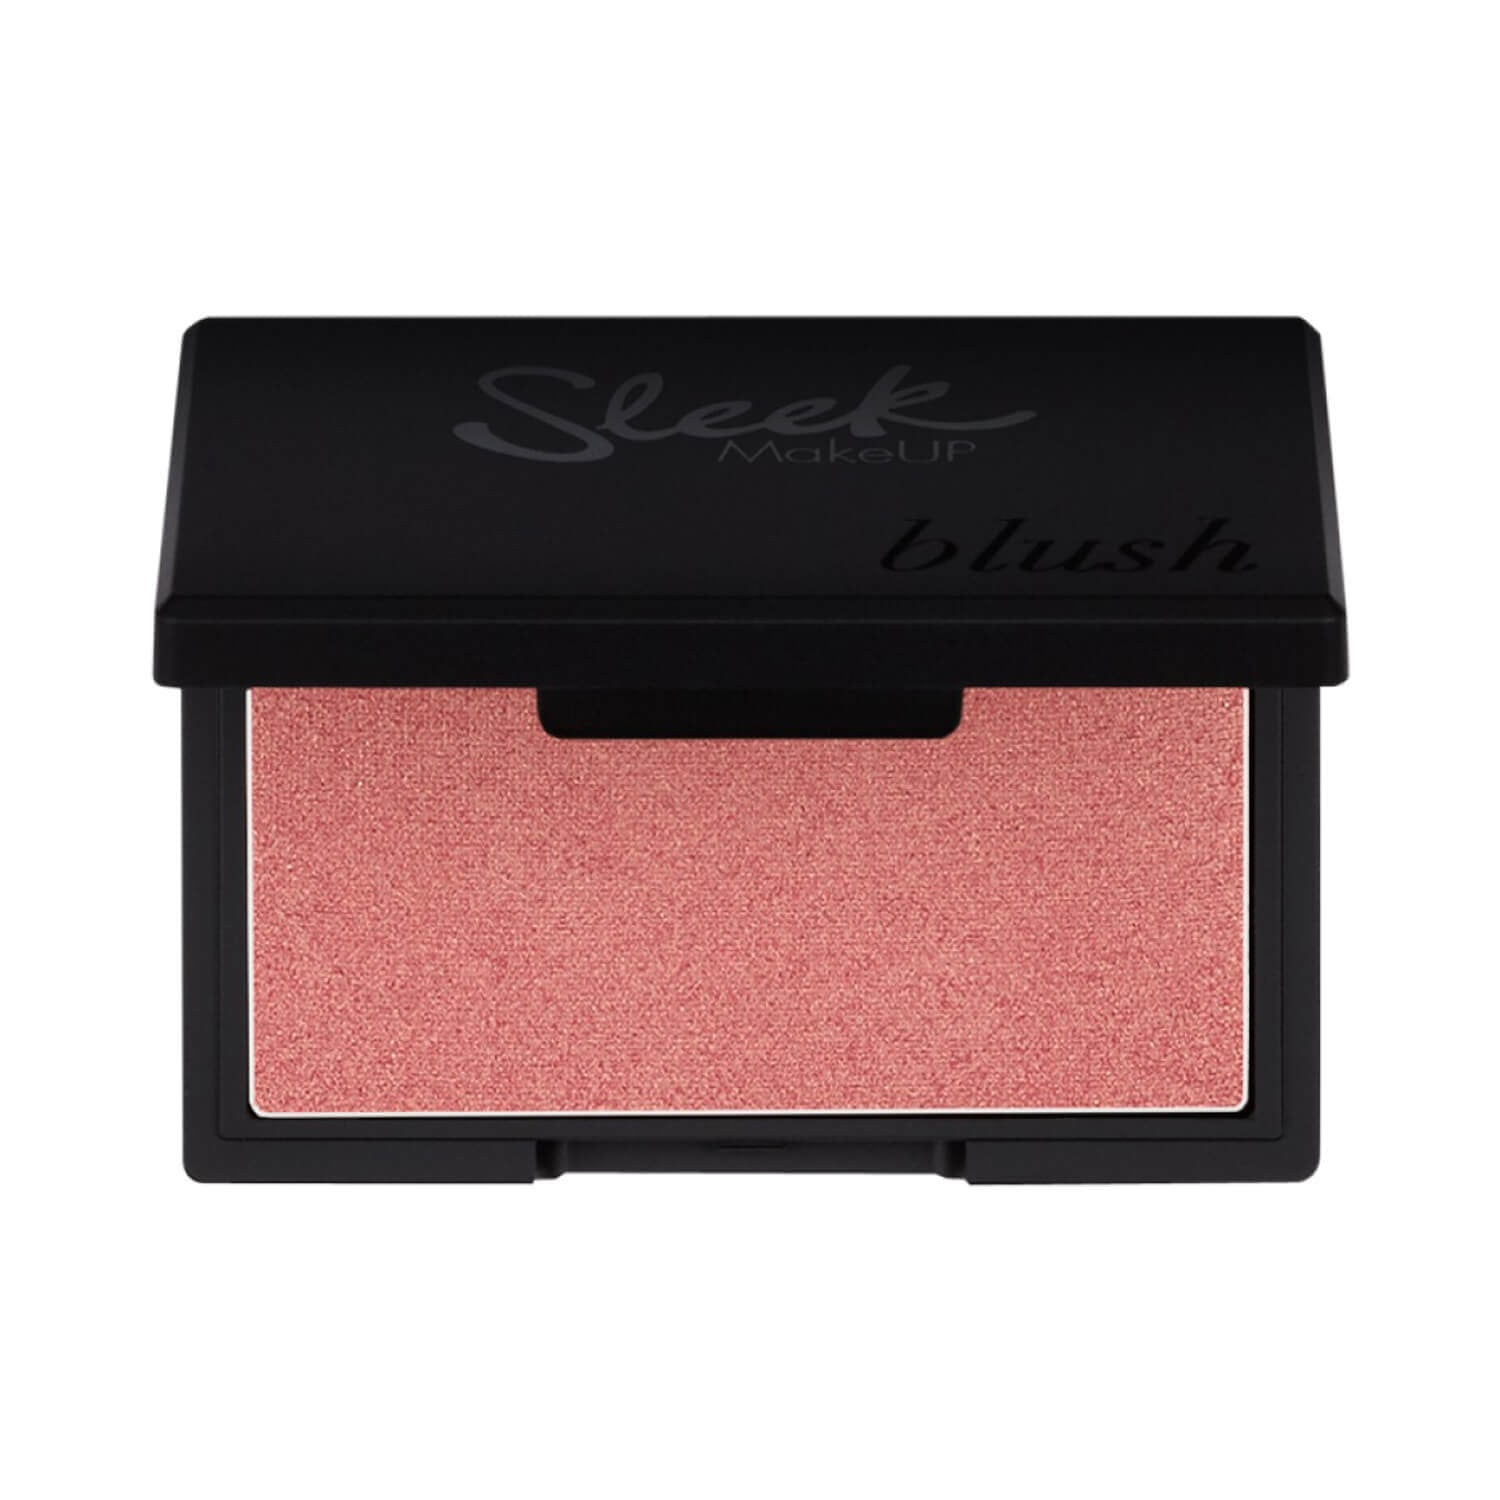 Sleek Blush in Rose Gold